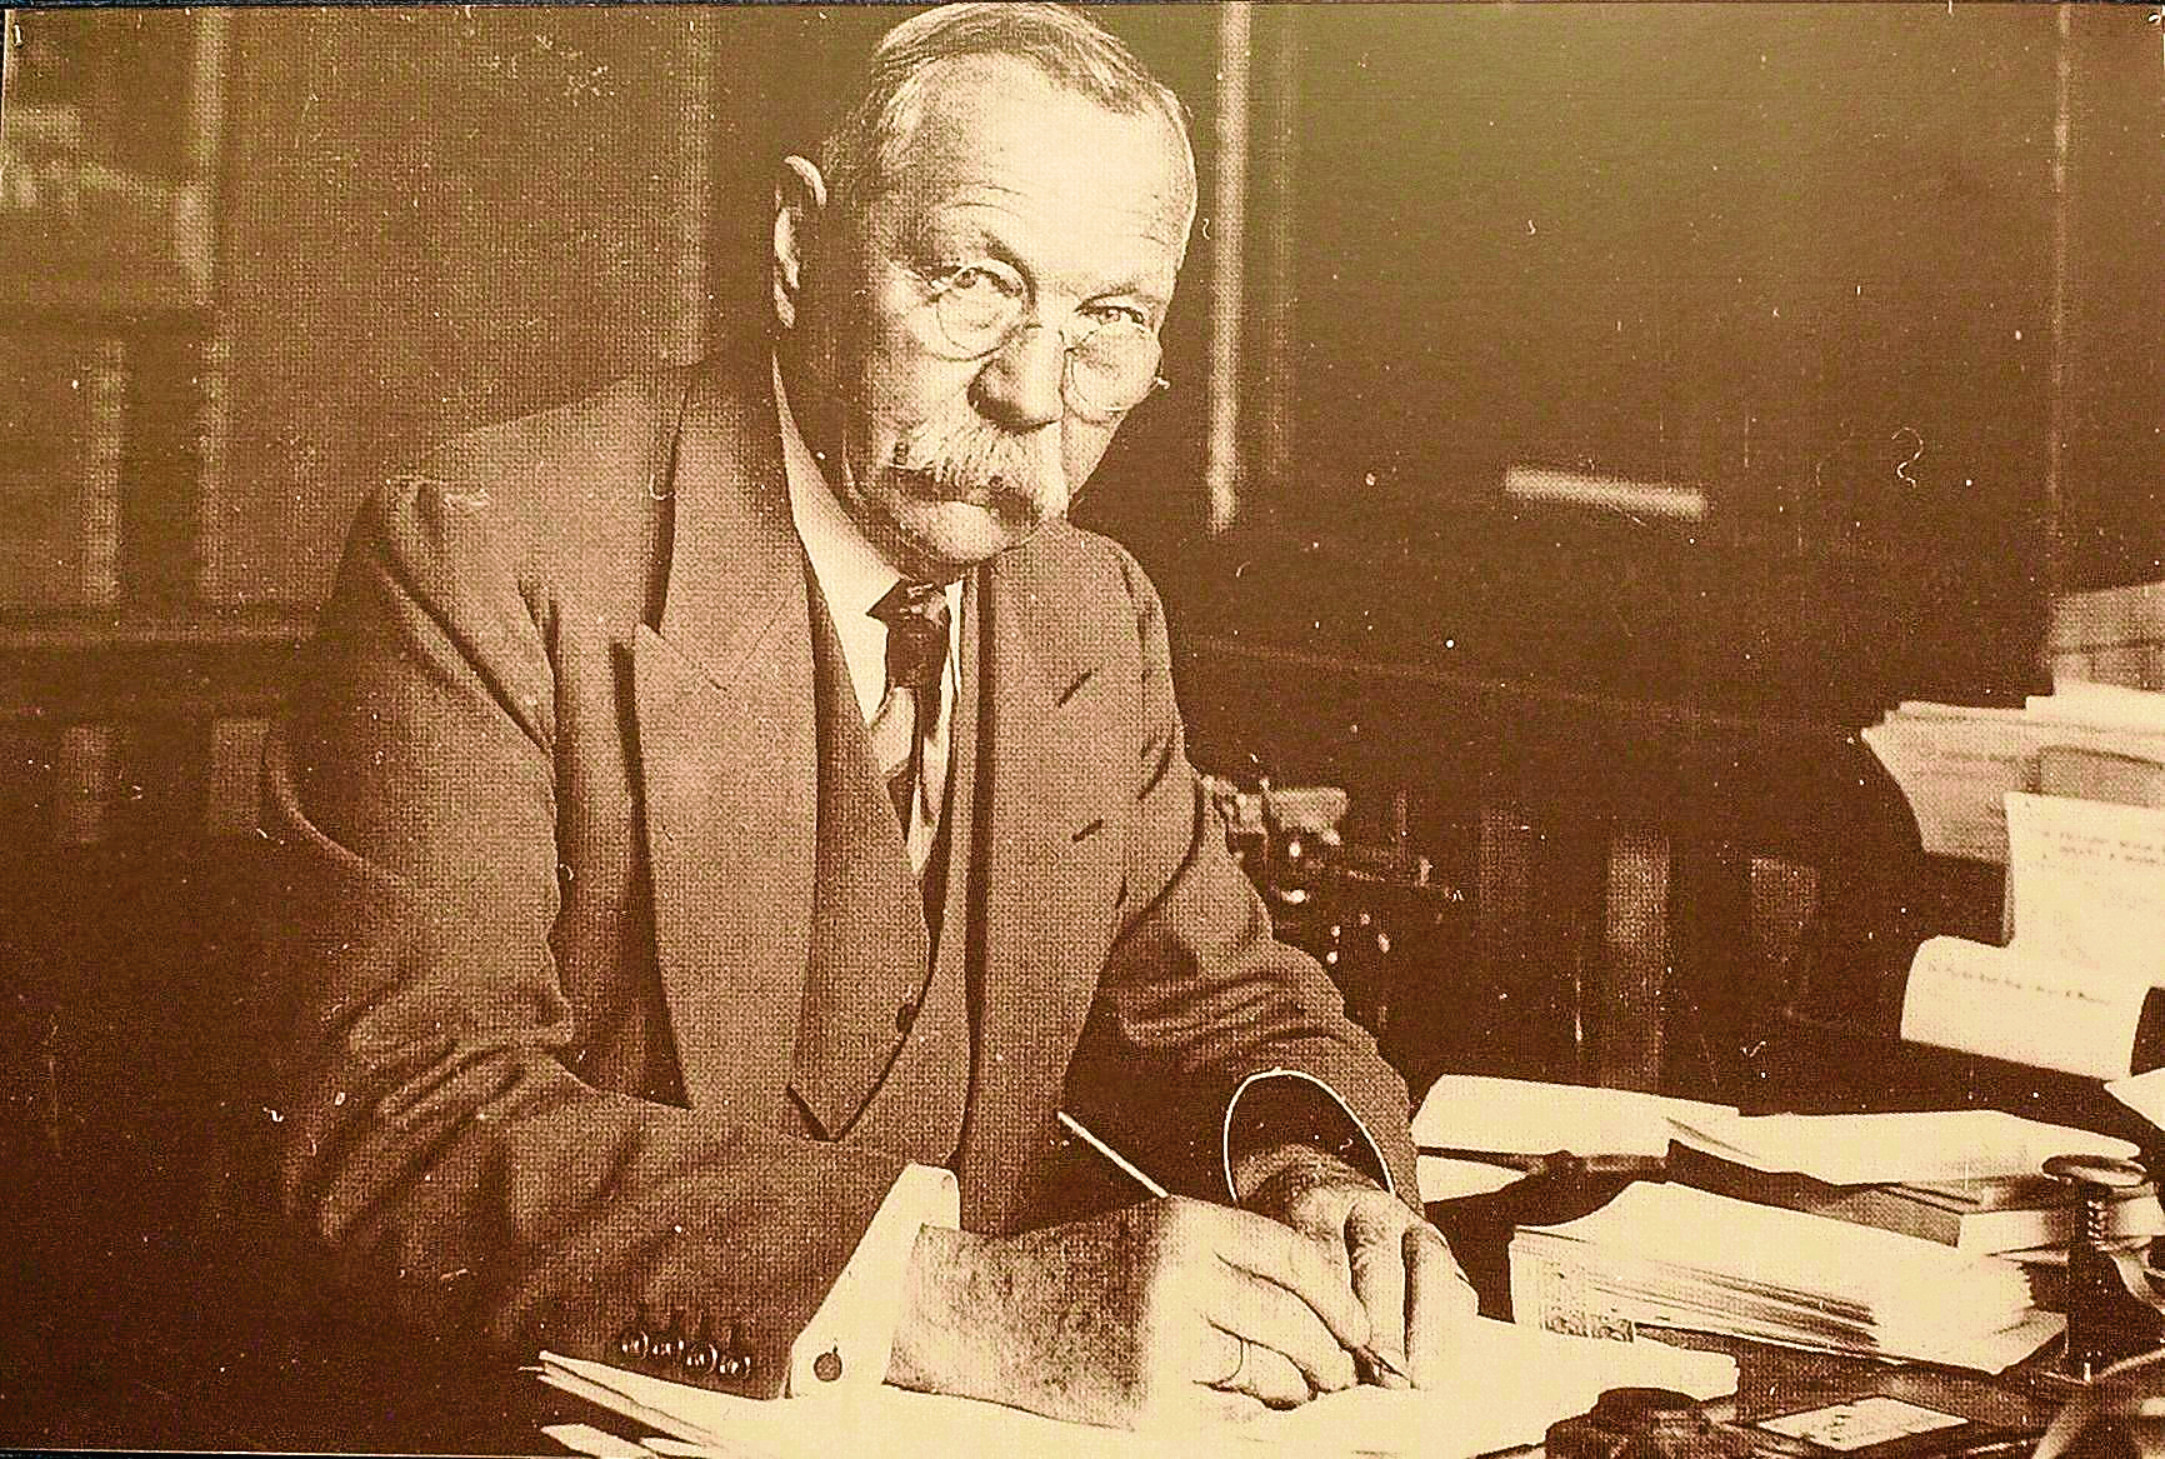 Sir Arthur Conan Doyle taken a few years before his death in 1930 (PA Photo / Kirsty Wigglesworth)